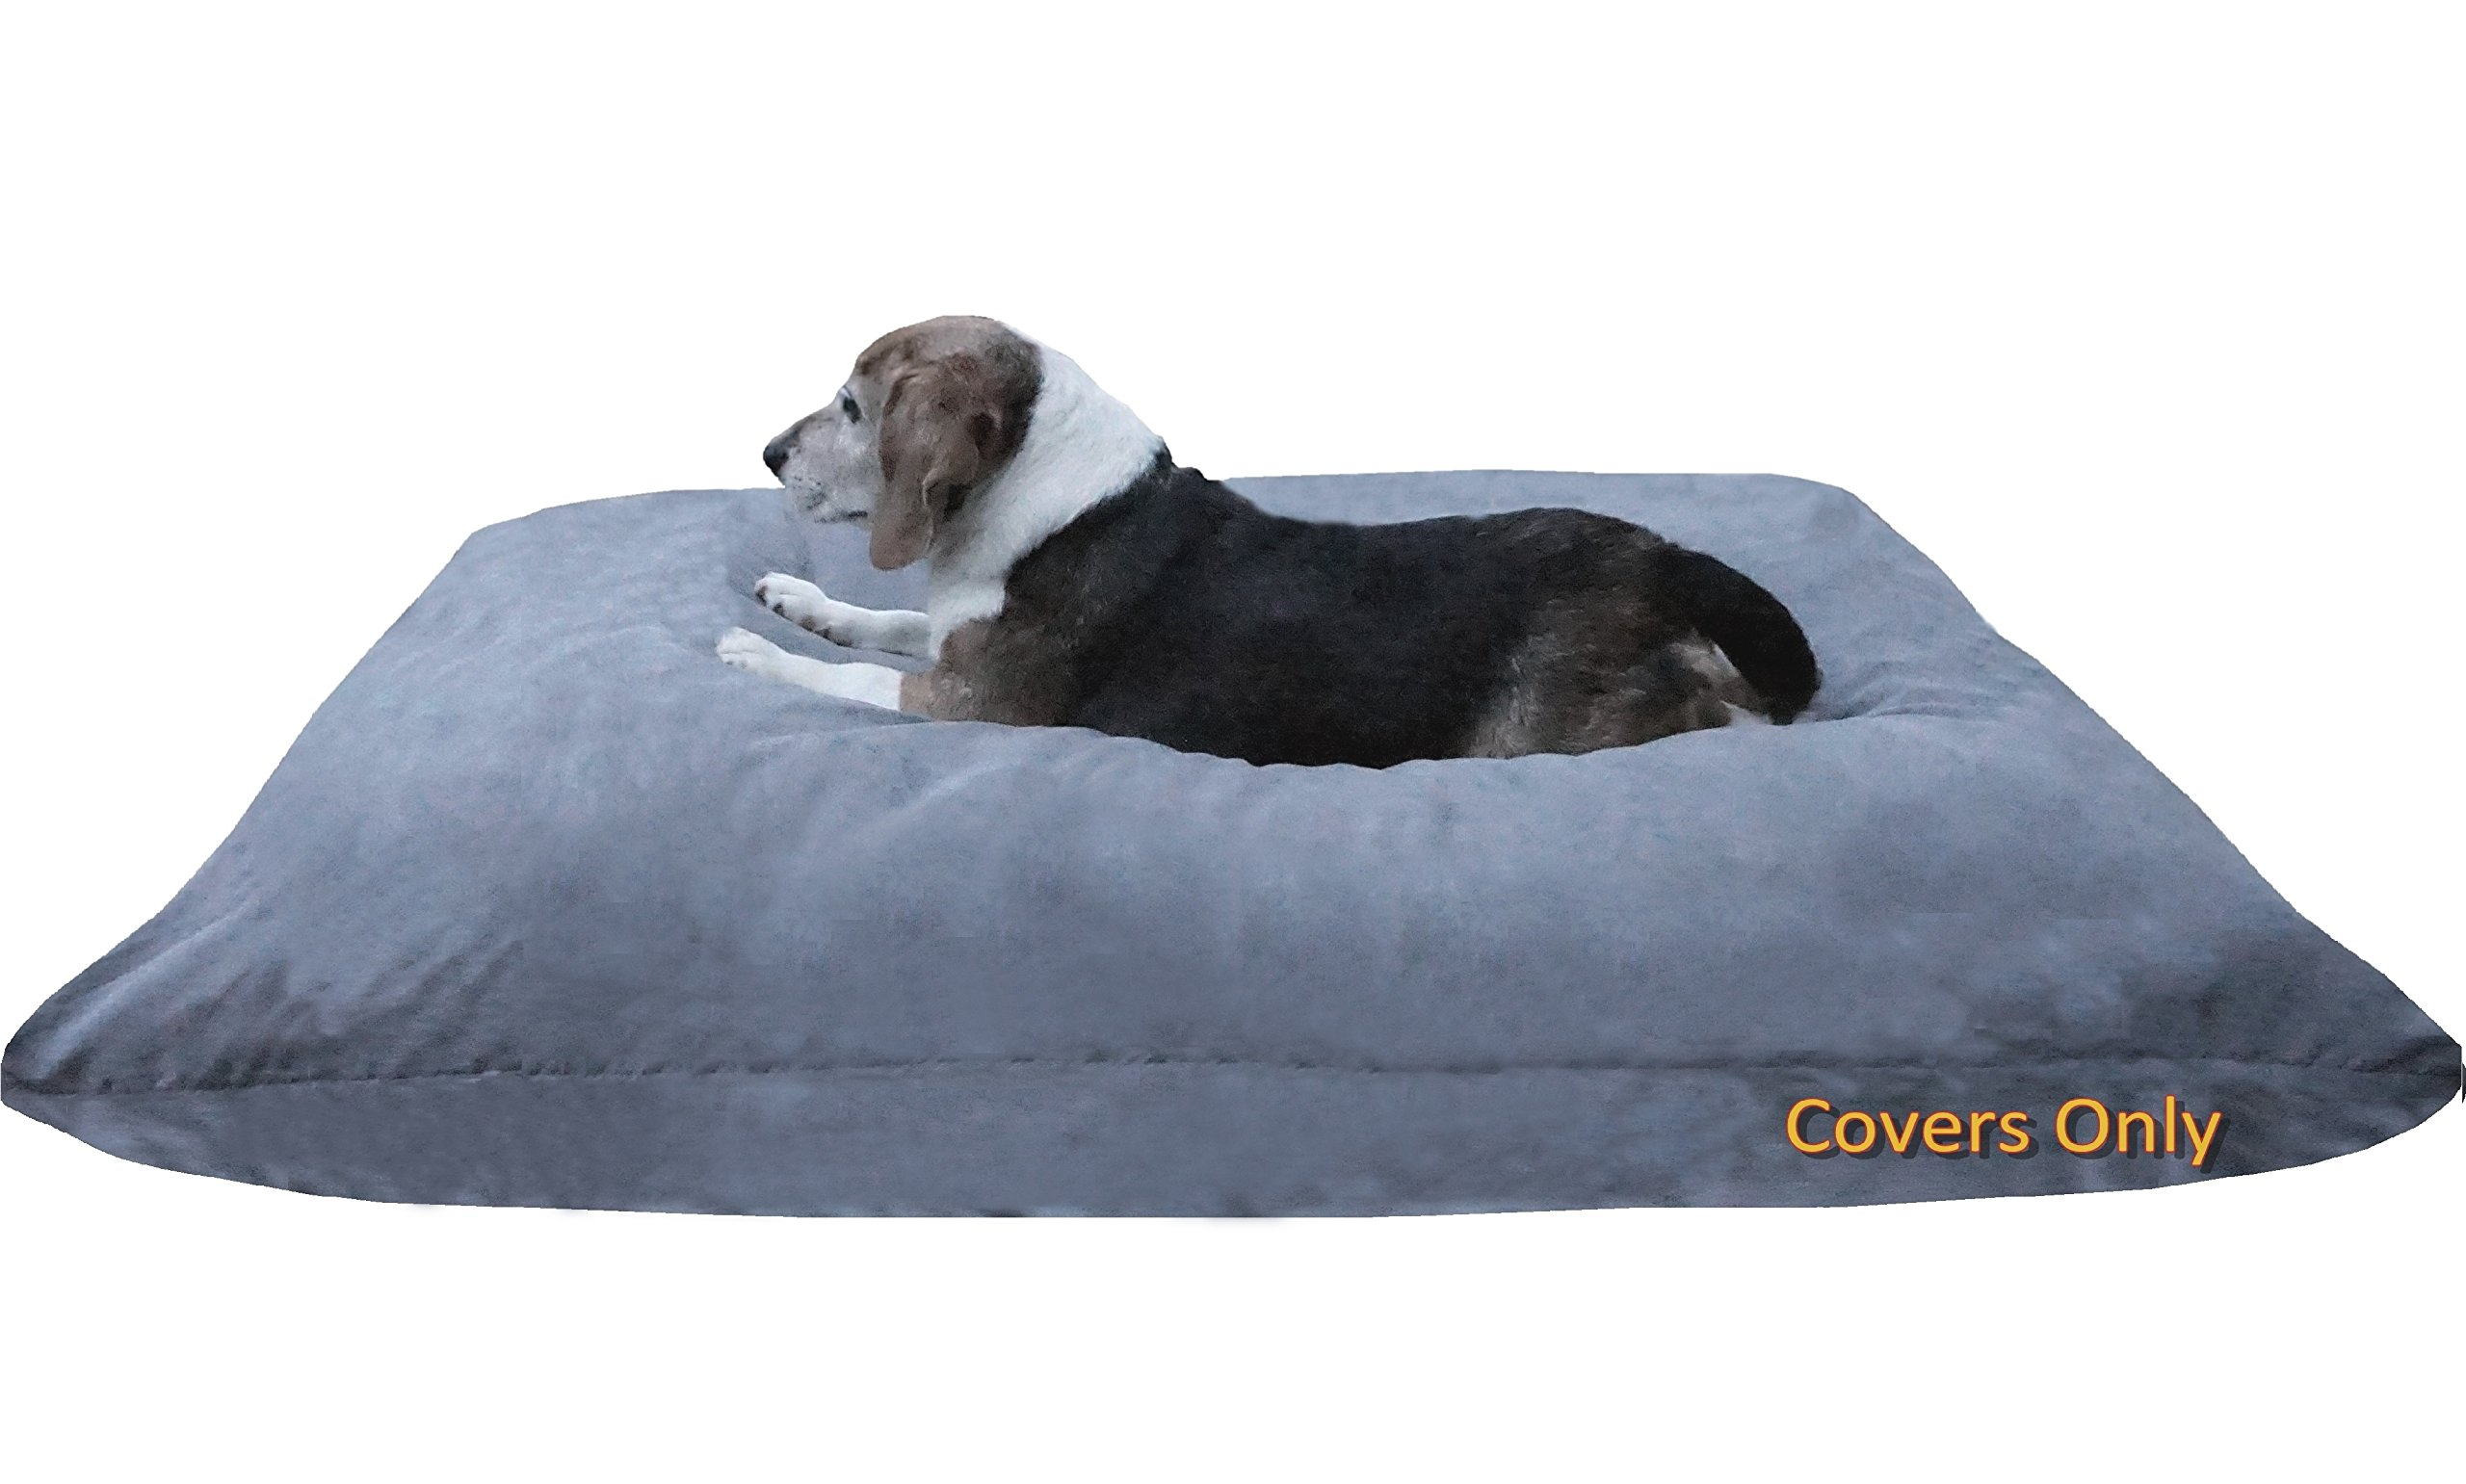 Do It Yourself DIY Pet Bed Pillow Duvet Suede Cover + Waterproof Internal case for Dog/Cat at Large 48''X29'' Gray Color - Covers only